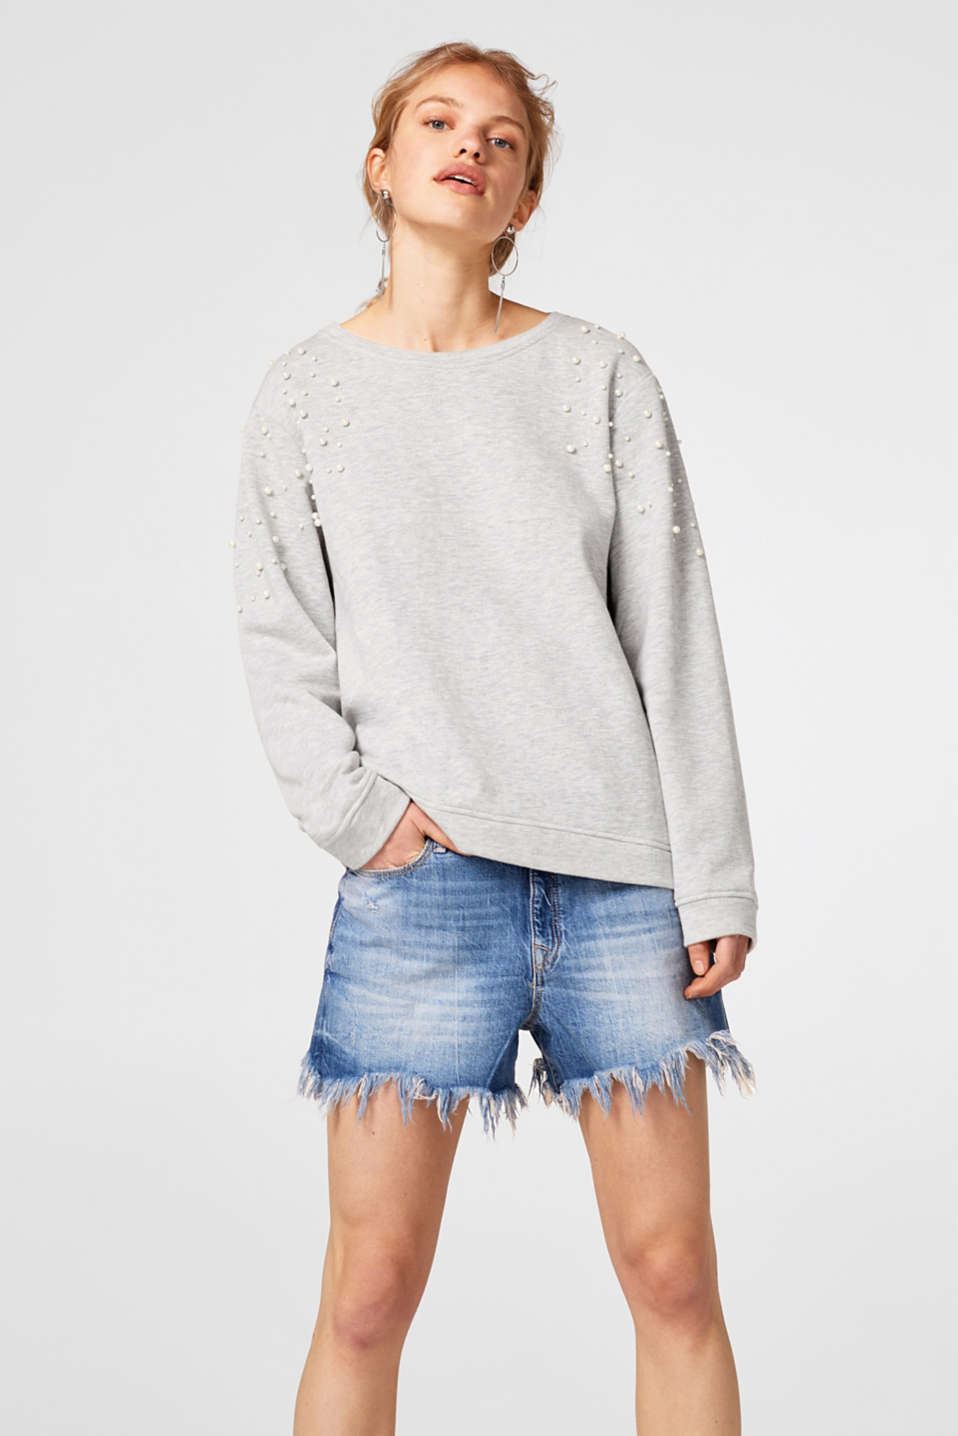 edc - Softer Sweater mit Perlen-Dekor